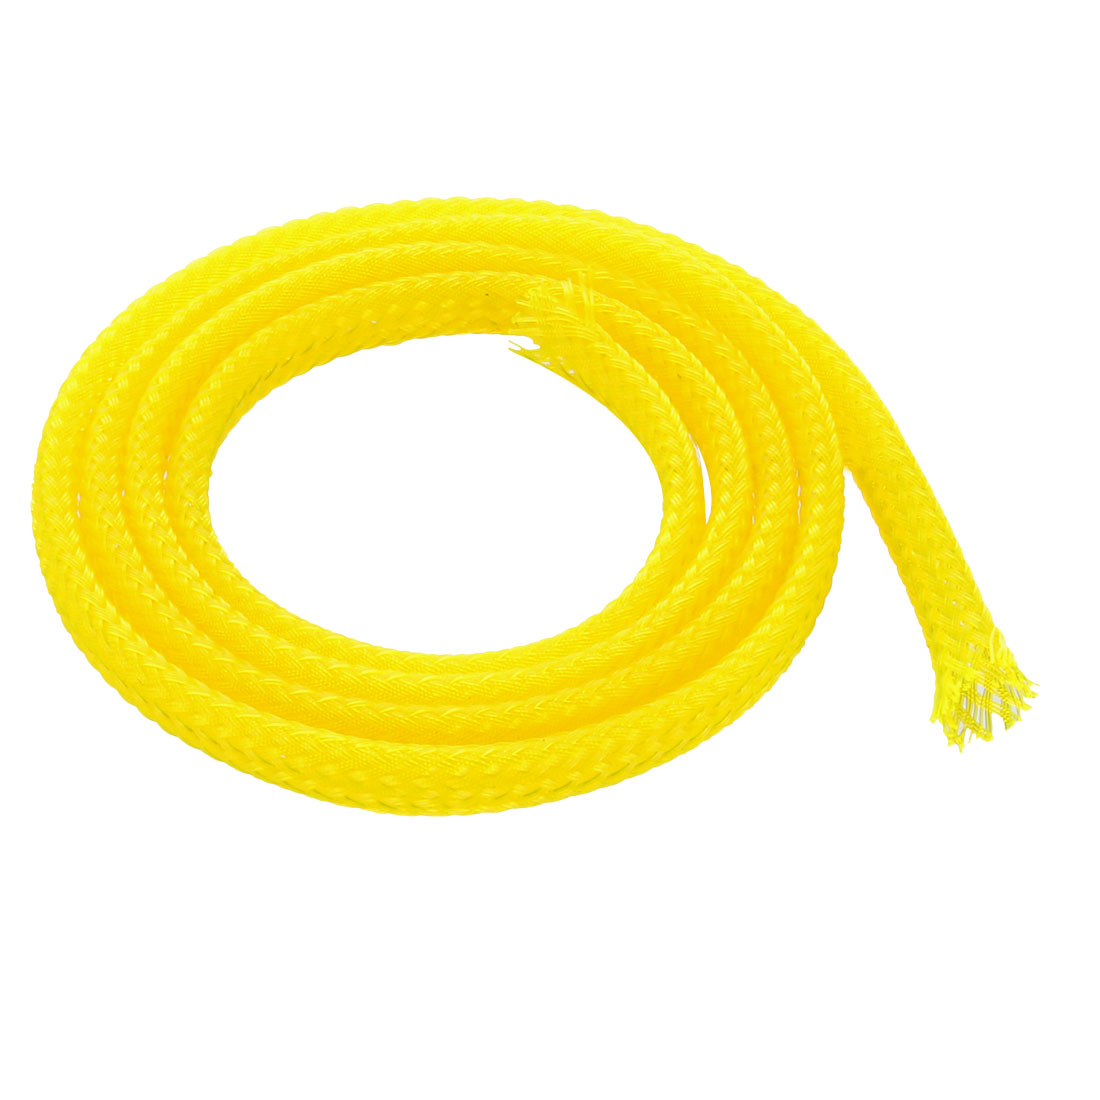 4mm Dia Tight Braided PET Expandable Sleeving Cable Wire Wrap Sheath Yellow 50CM